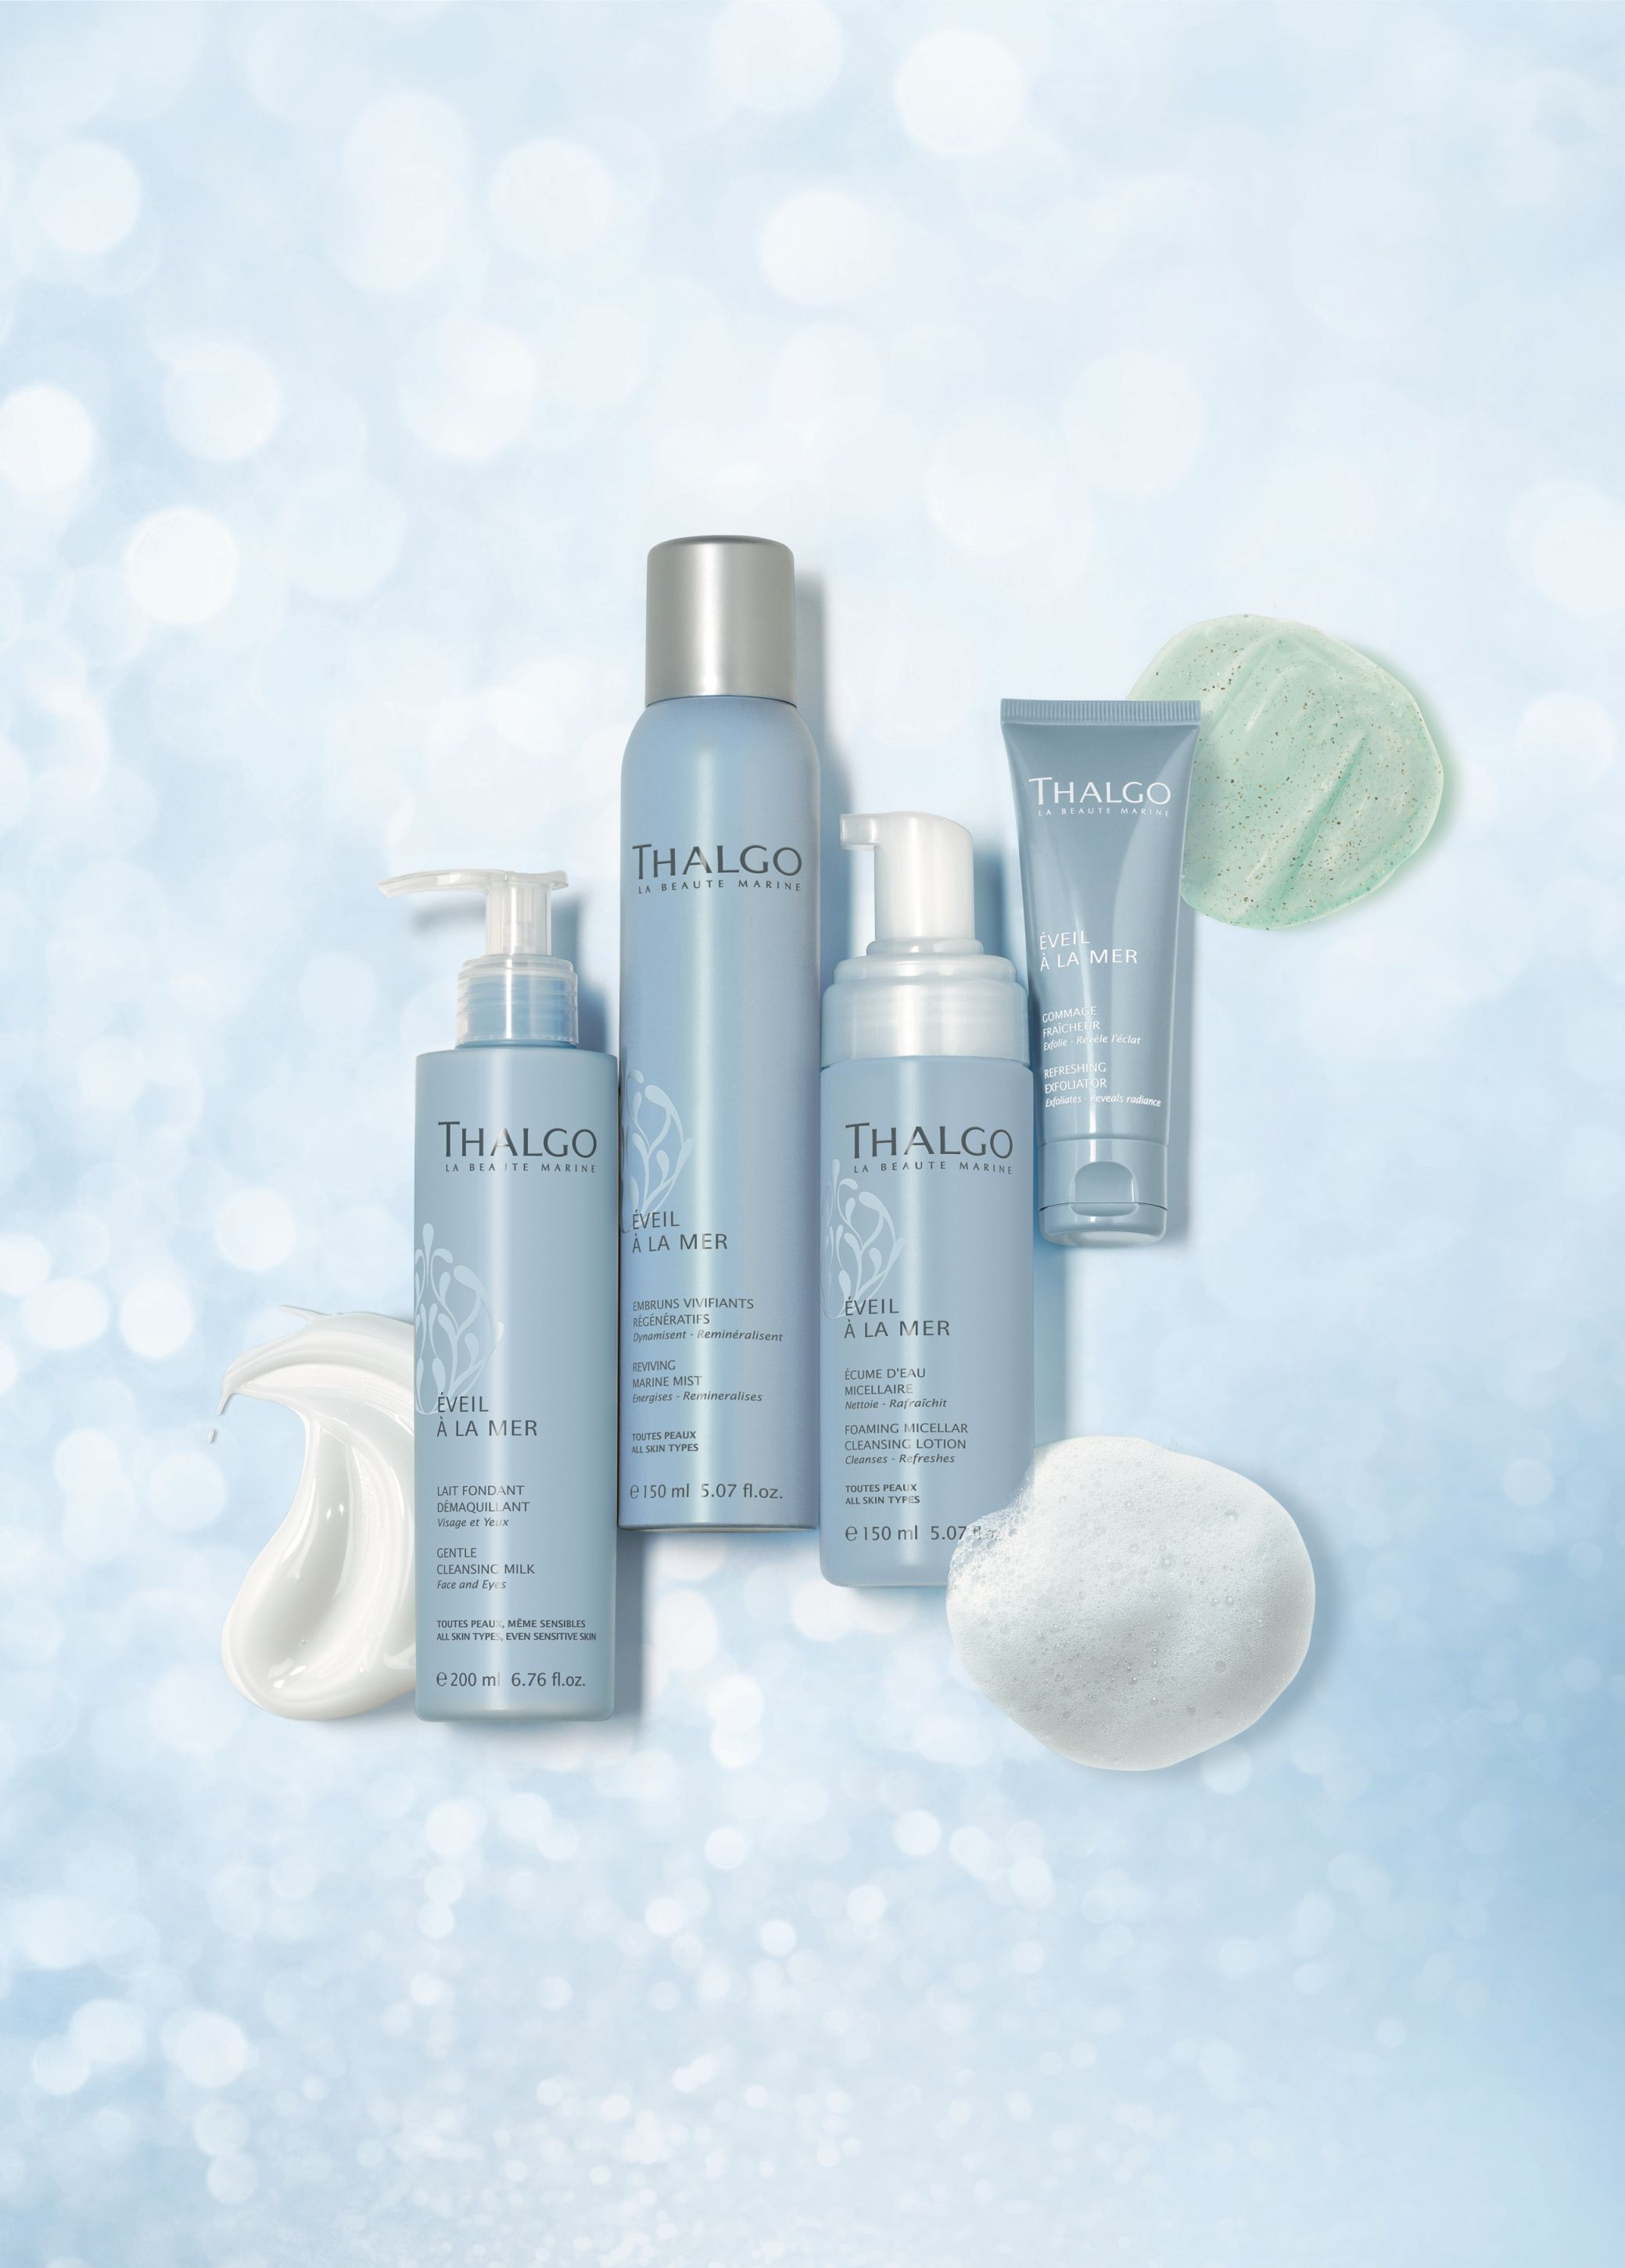 Thalgo's Eveil à la Mer cleansing range is inspired by the